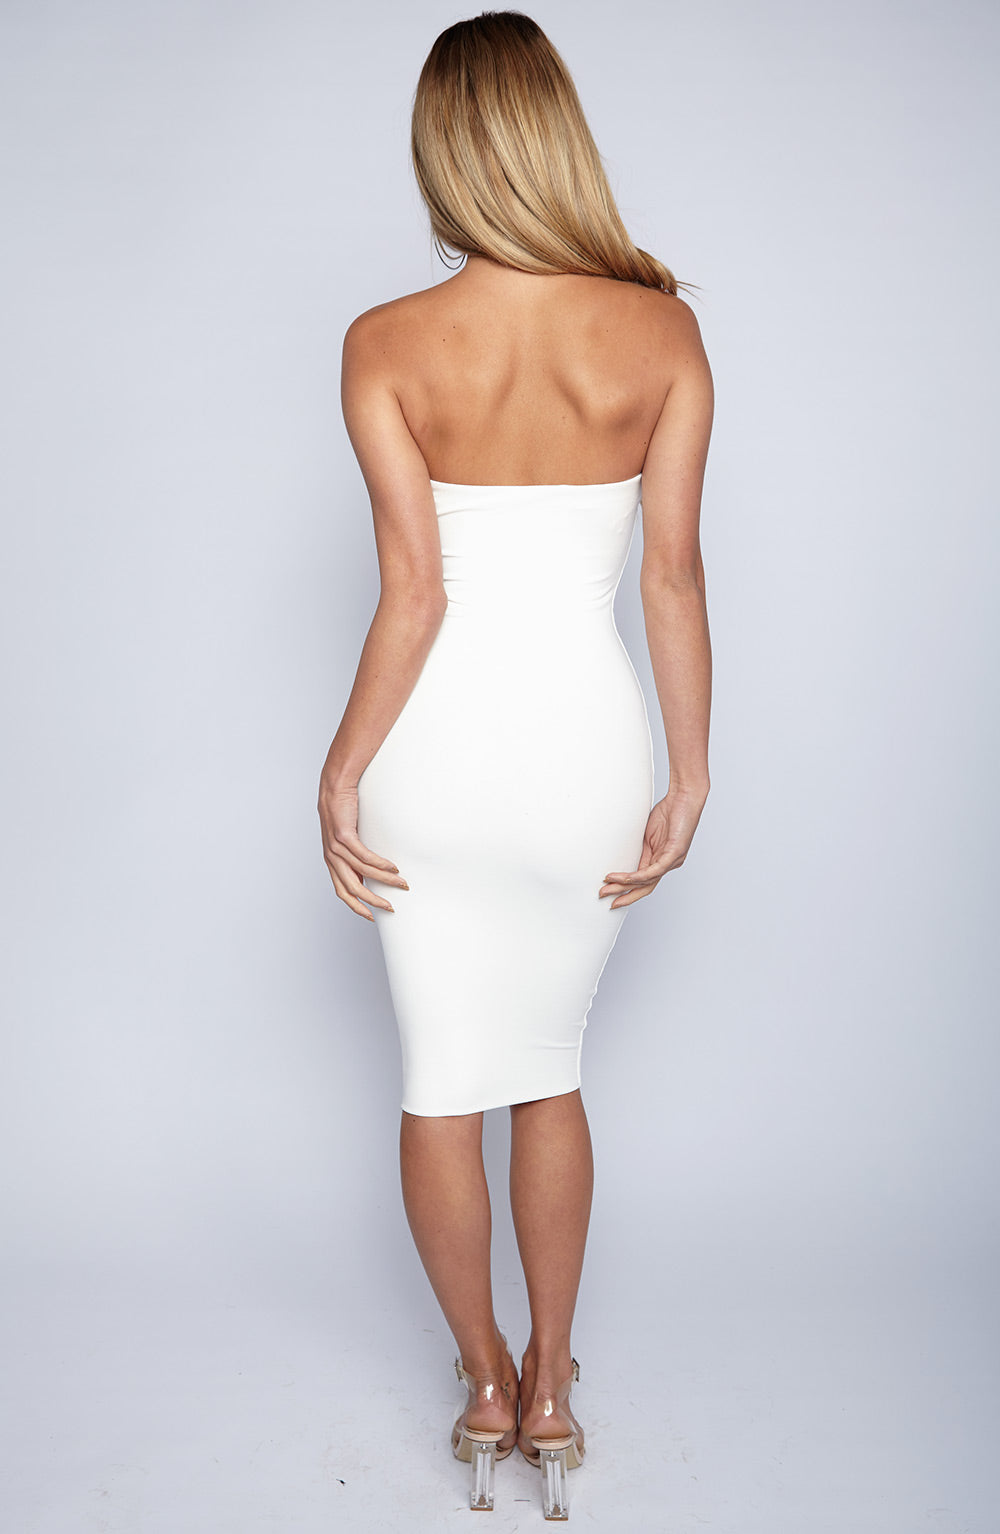 Zaria Dress - White